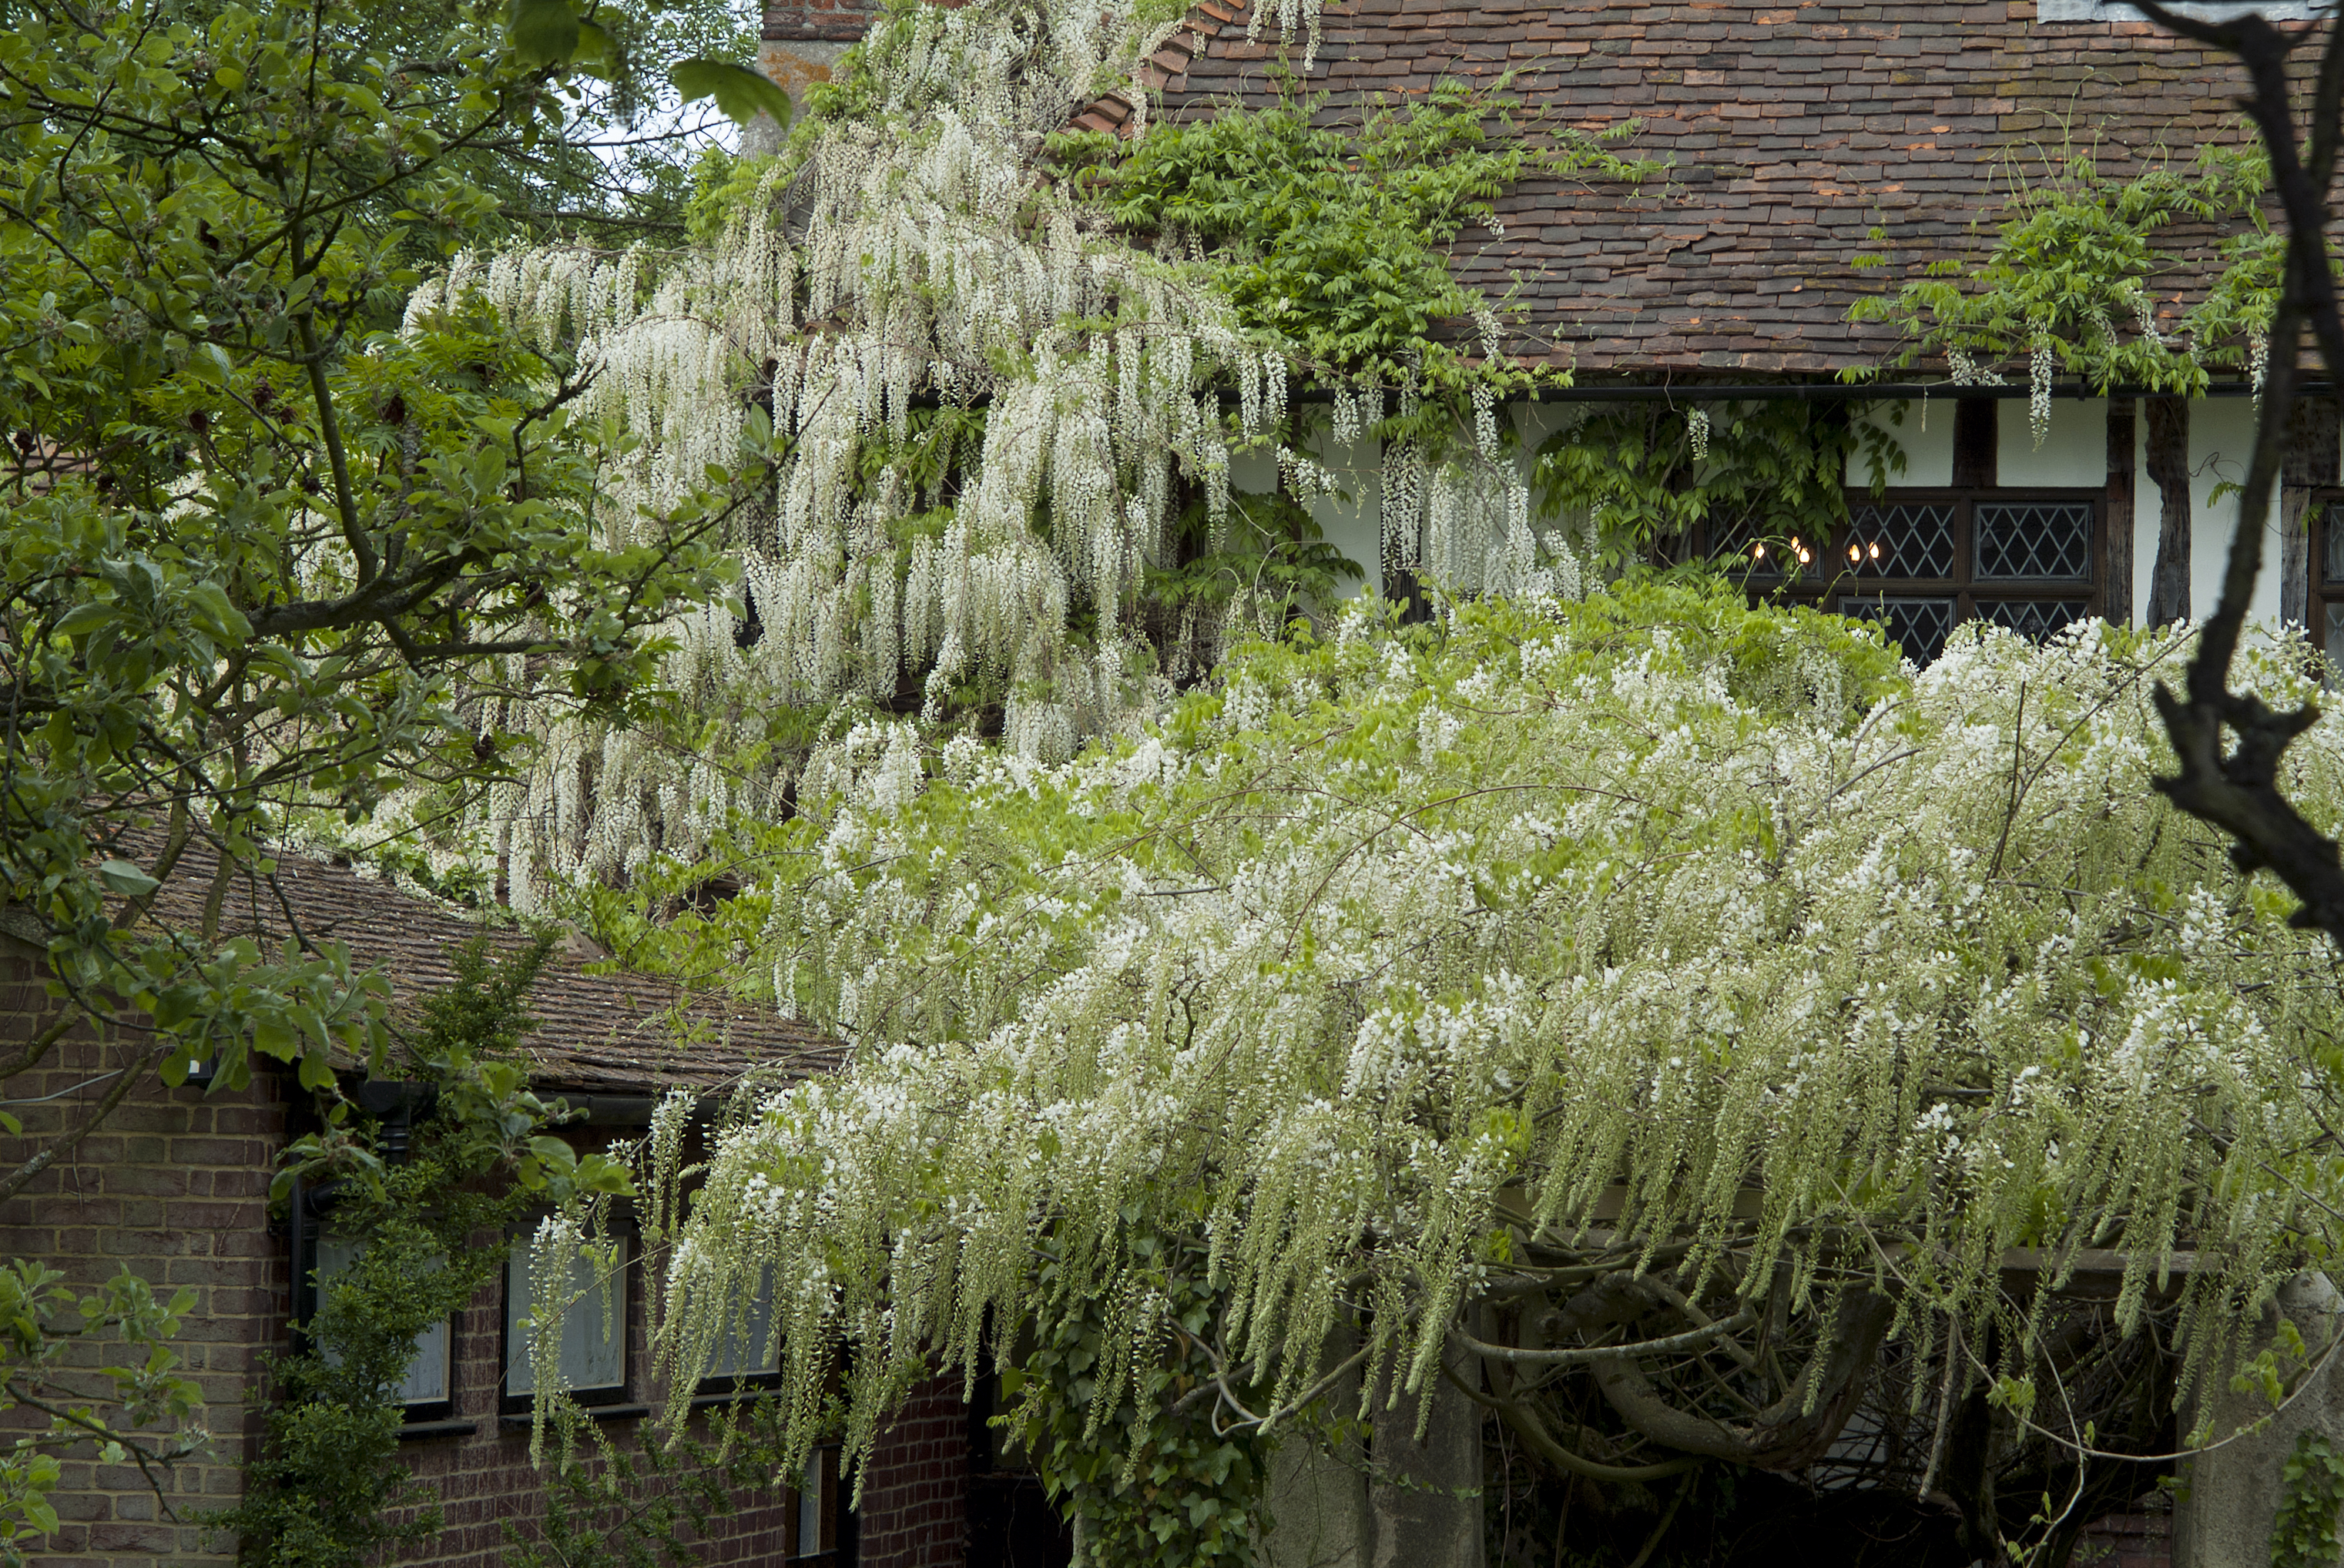 wisteria that's out of control (Tim Sandall/RHS/PA)